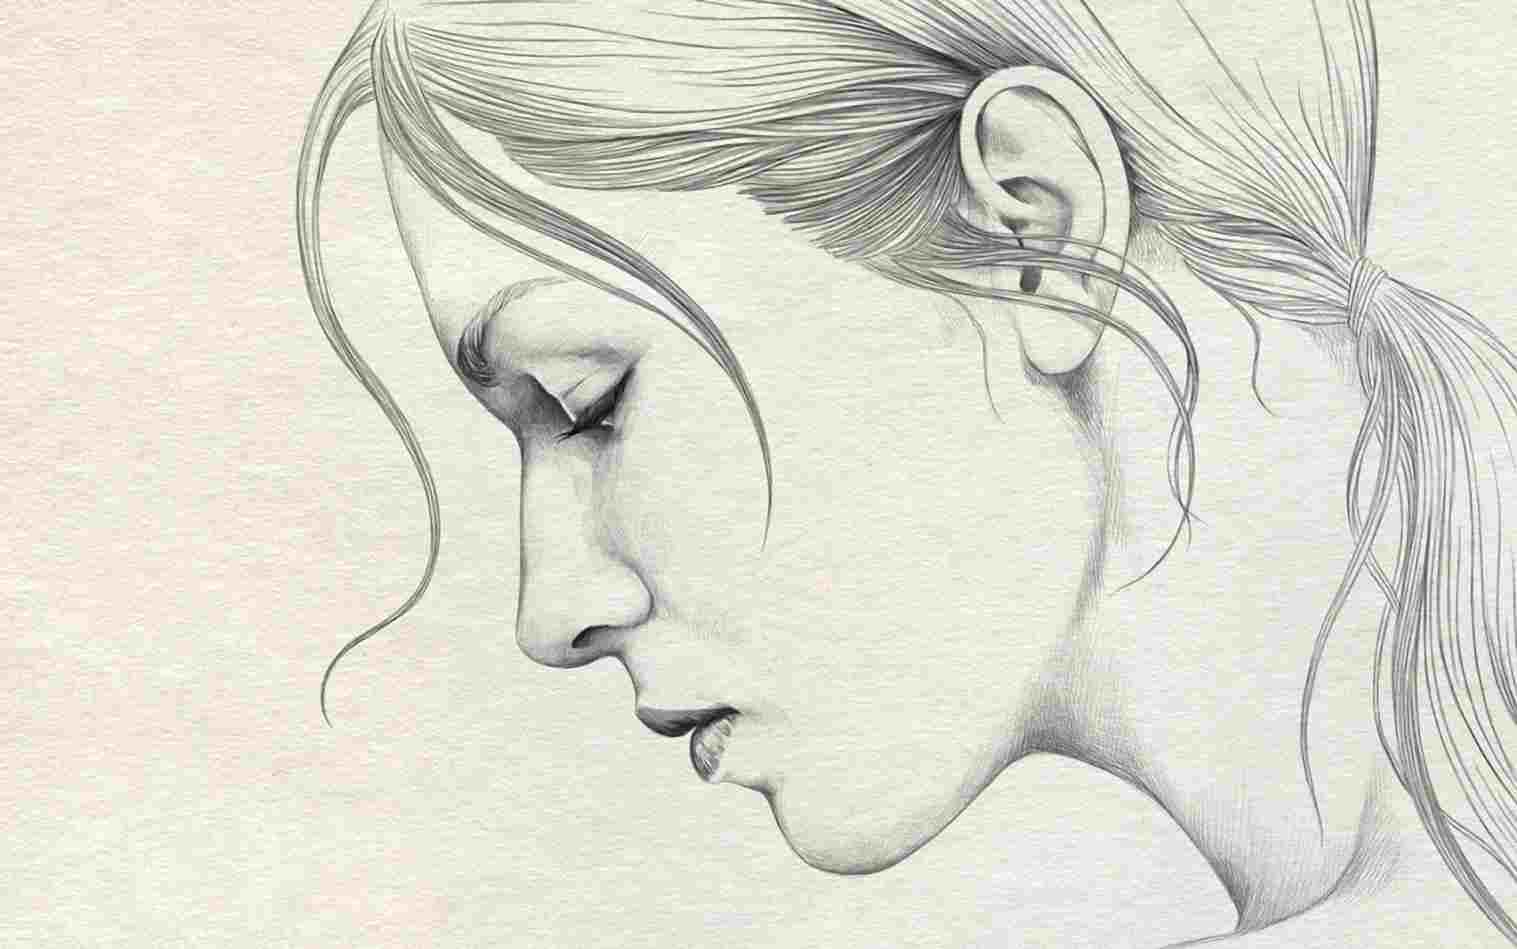 sketch-pencil-drawing-ideas-for-beginner-for-beginners-pencil